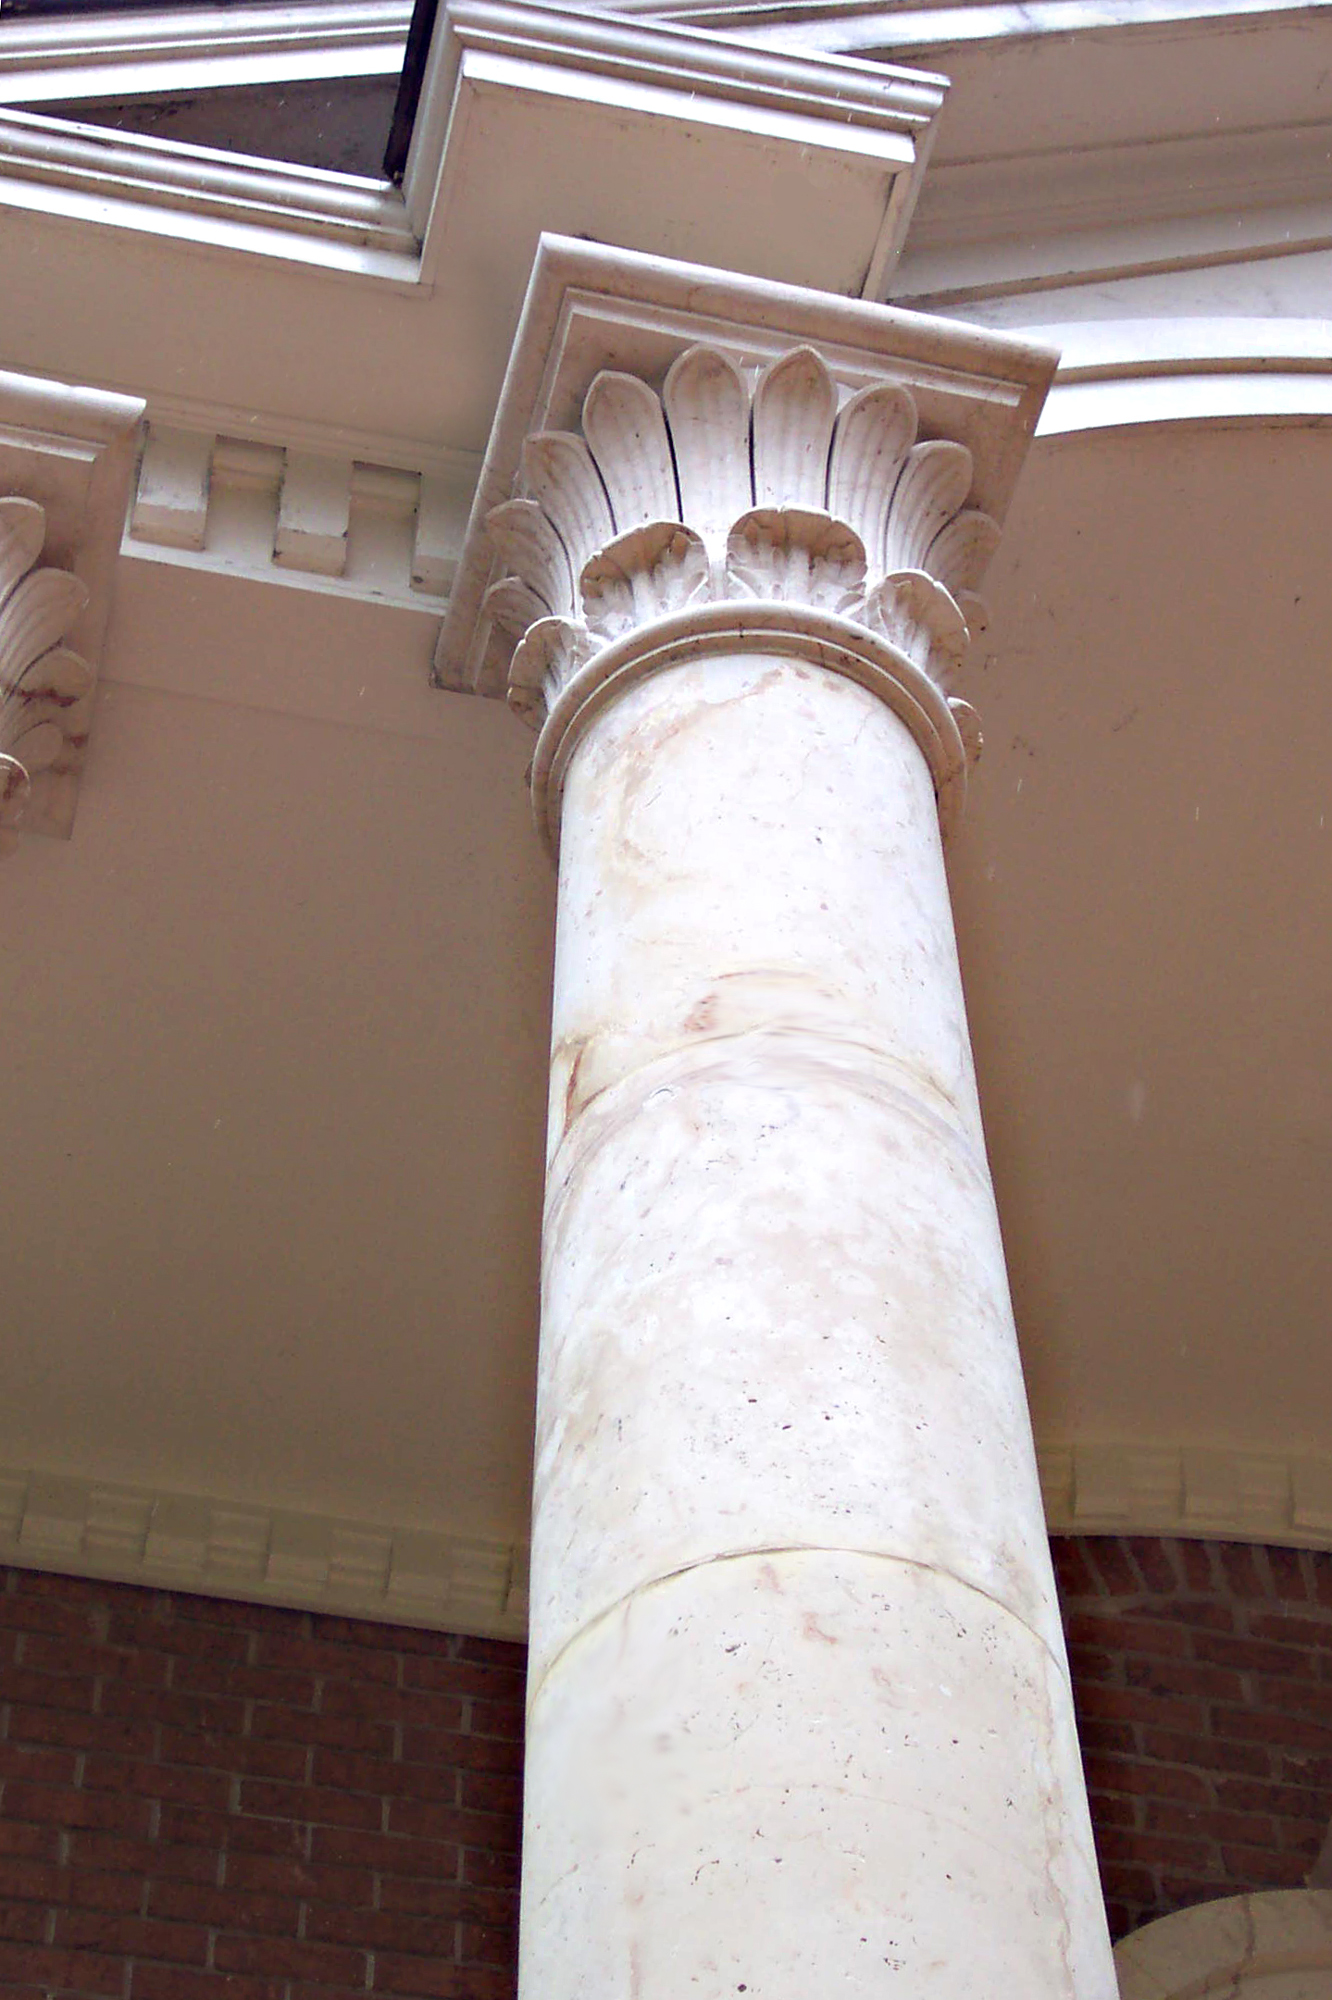 Classic Federal Style_Nasser_Front_Large Column capital detail_1332x2000_DCP_3013.jpg